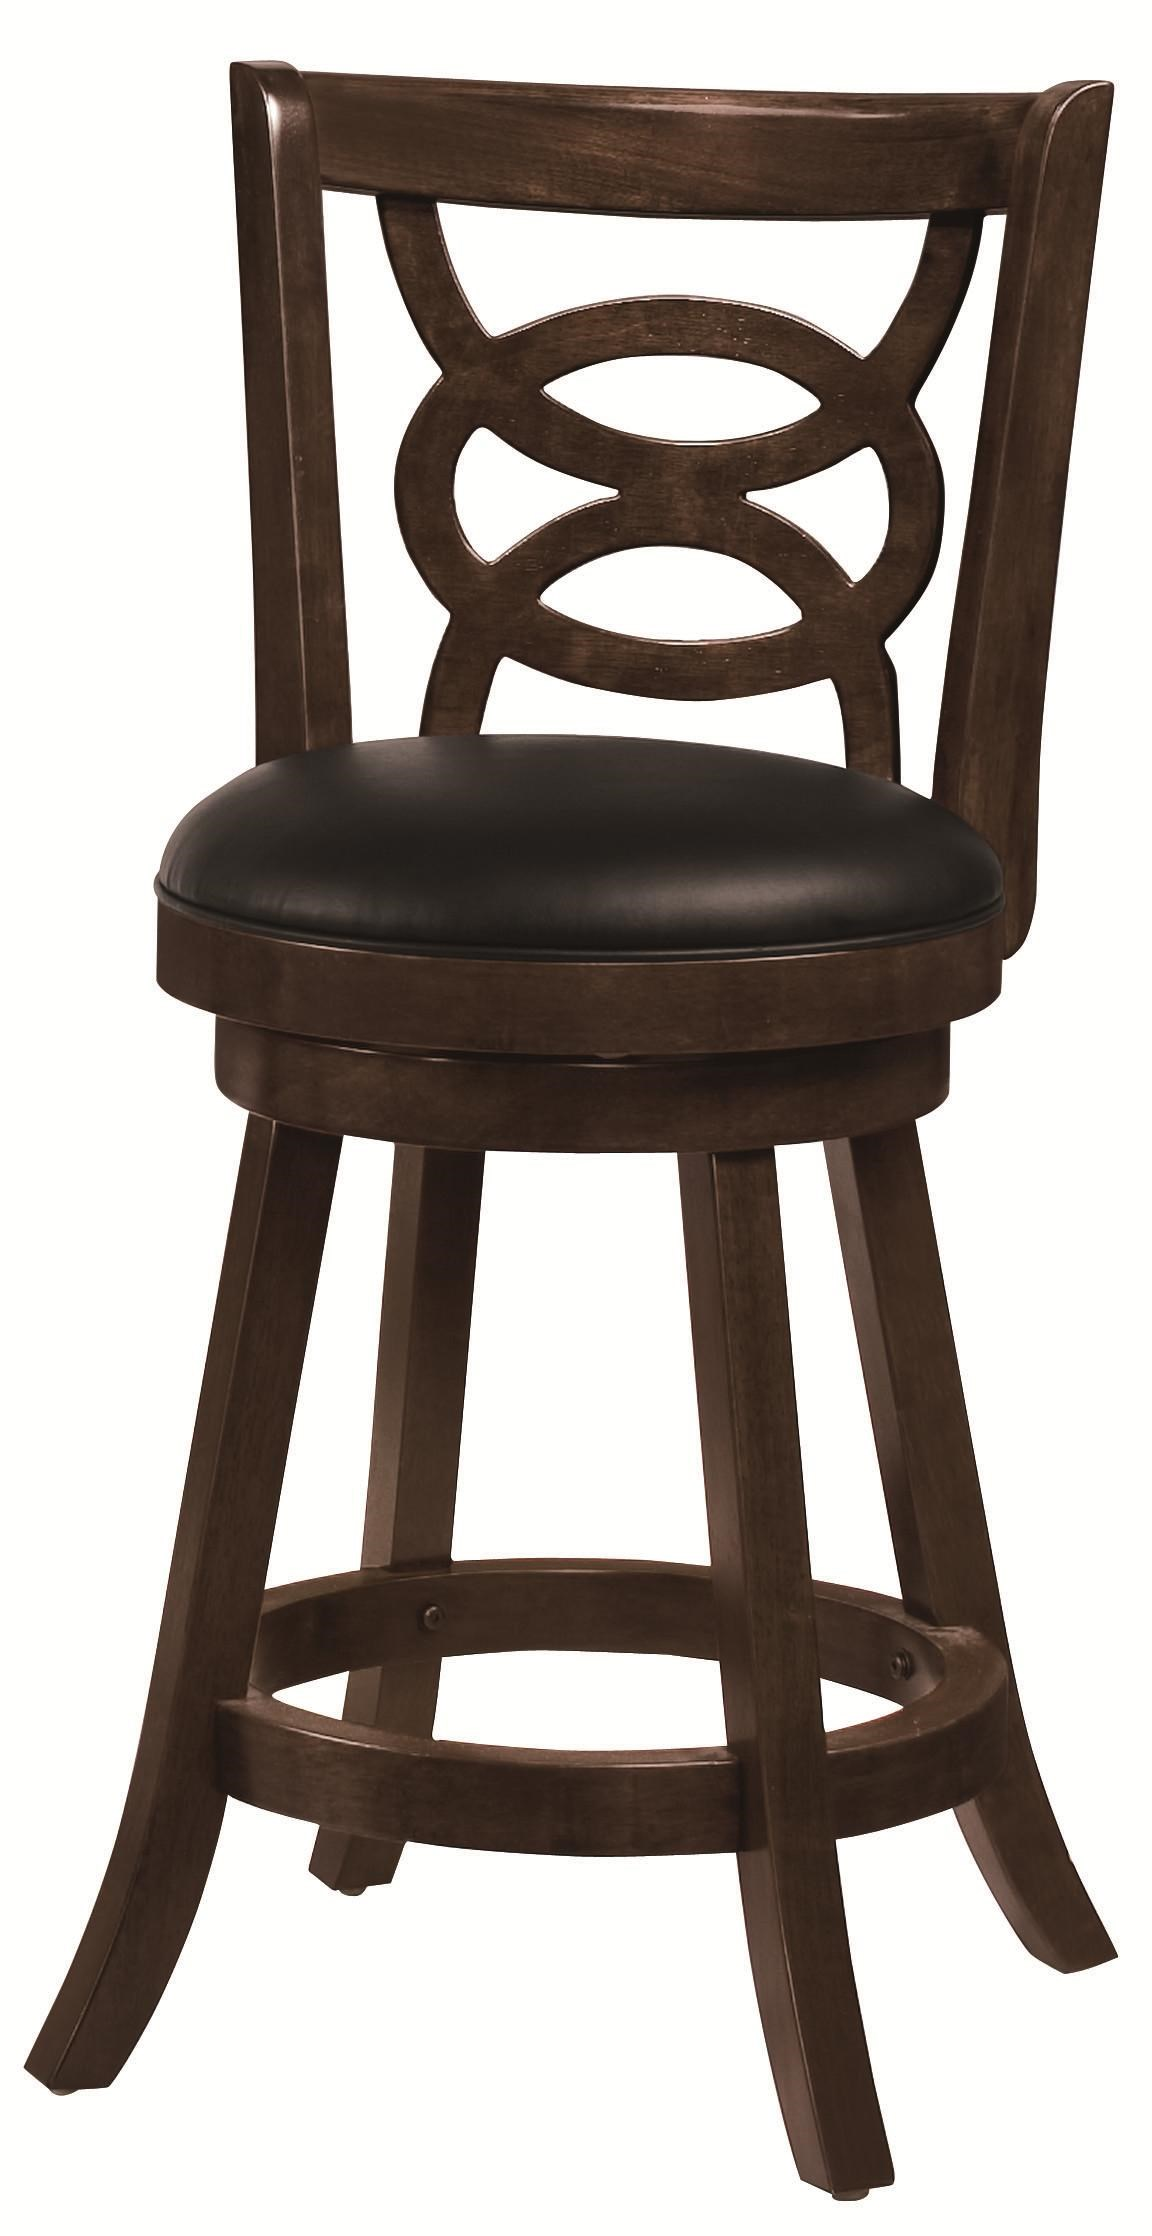 Bar Stool Chairs Dining Chairs And Bar Stools 24